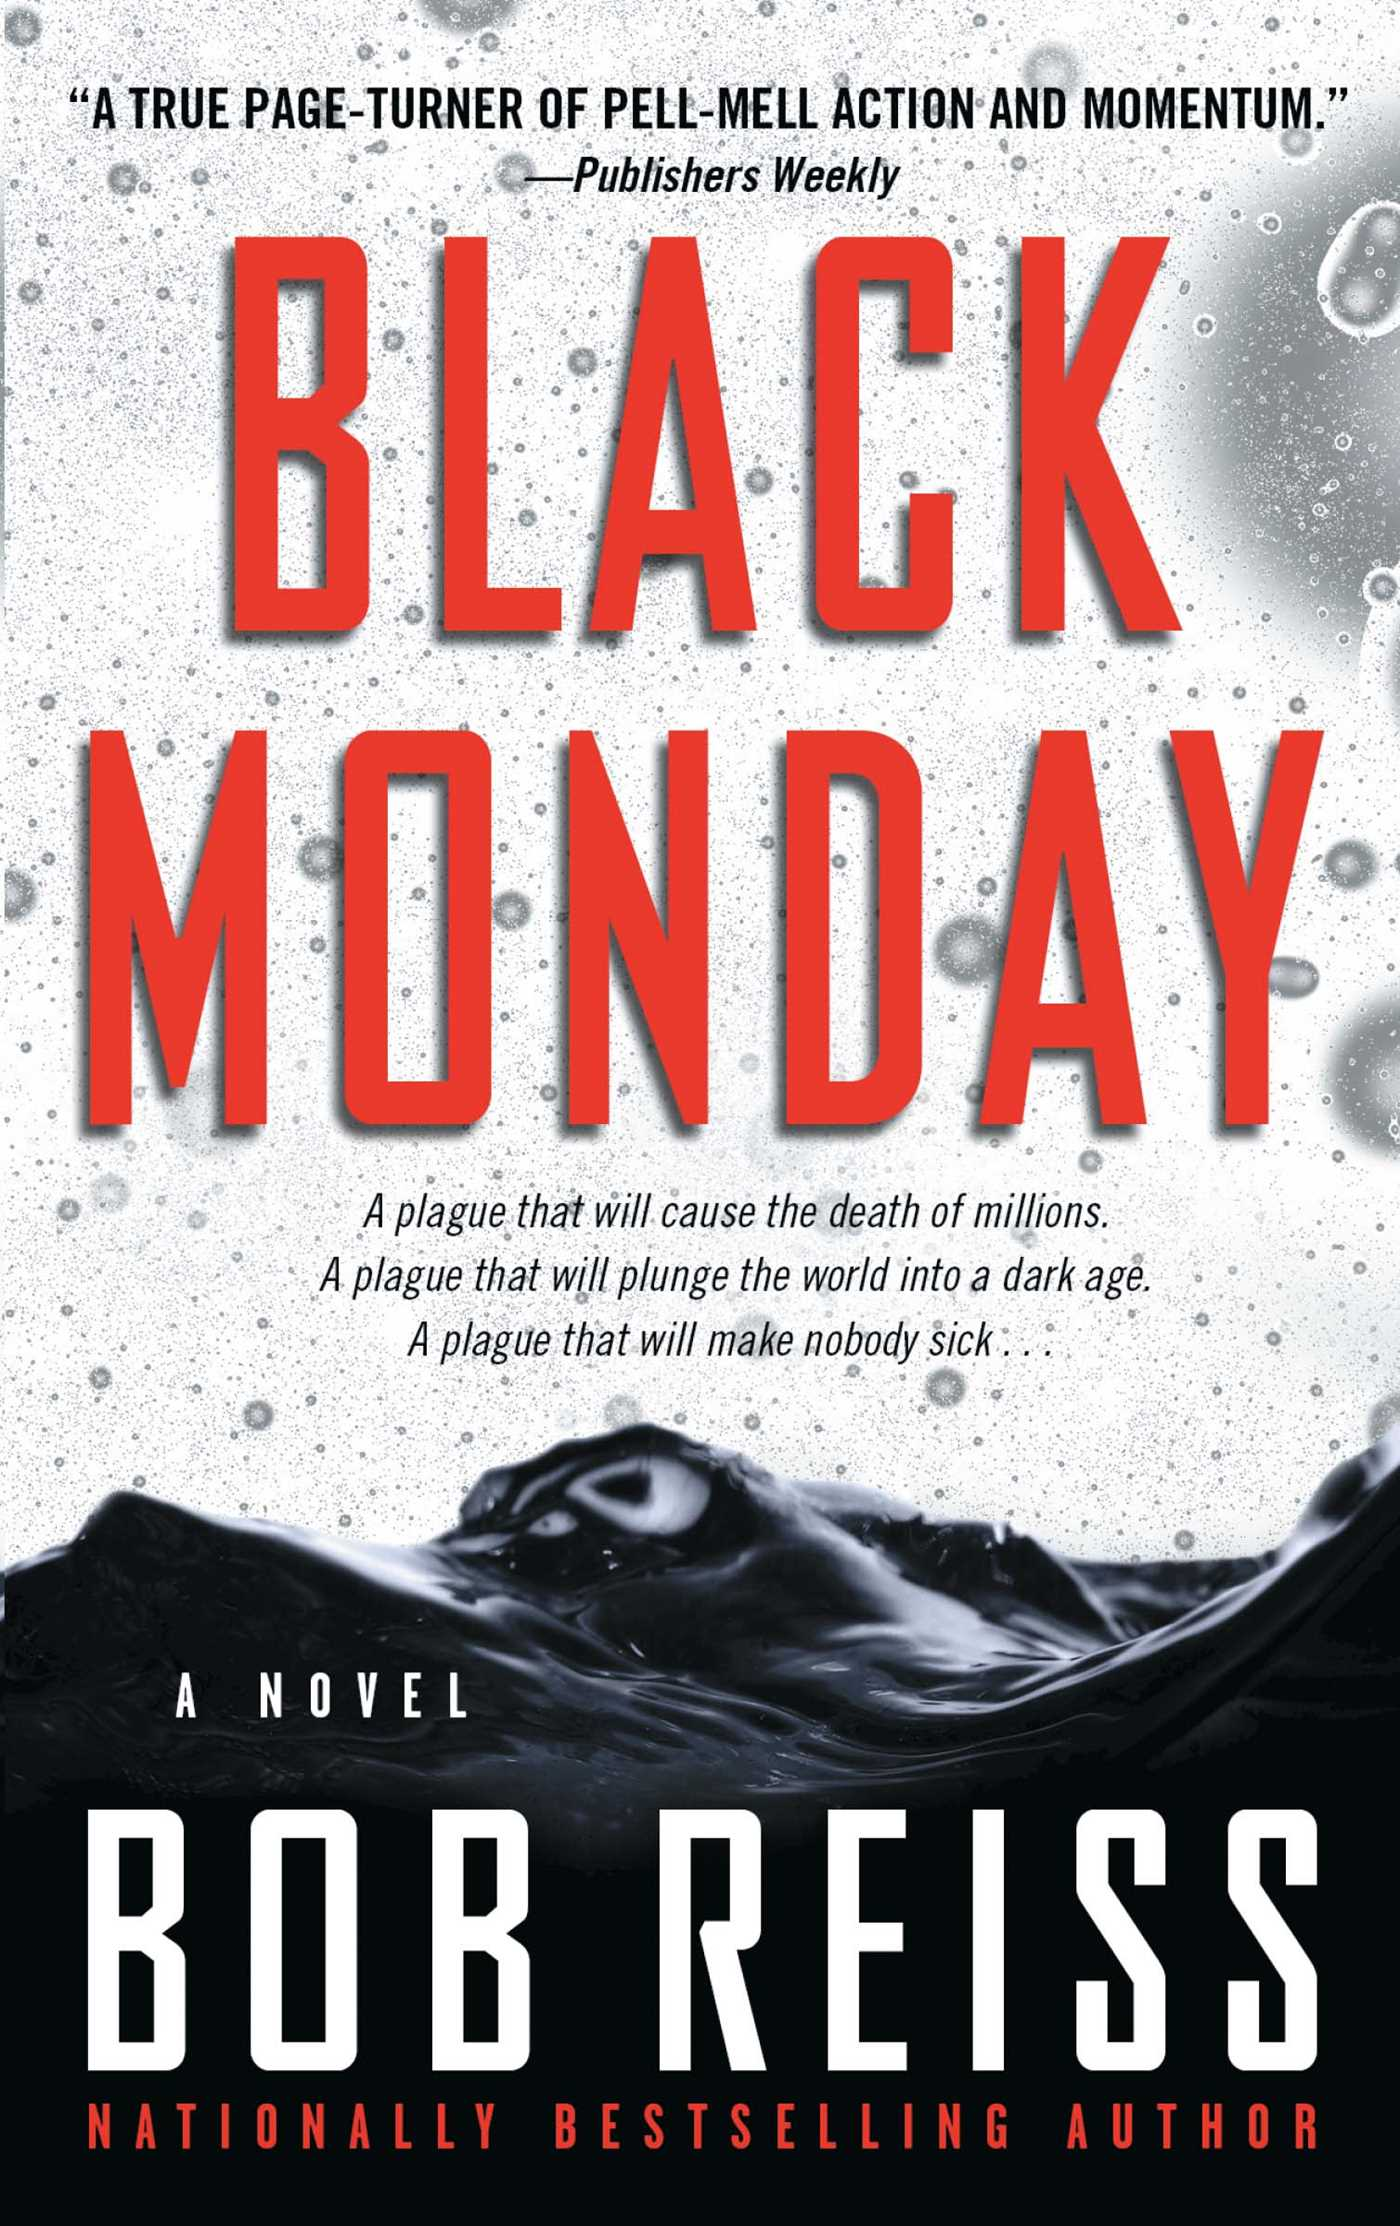 Black-monday-9781416549888_hr